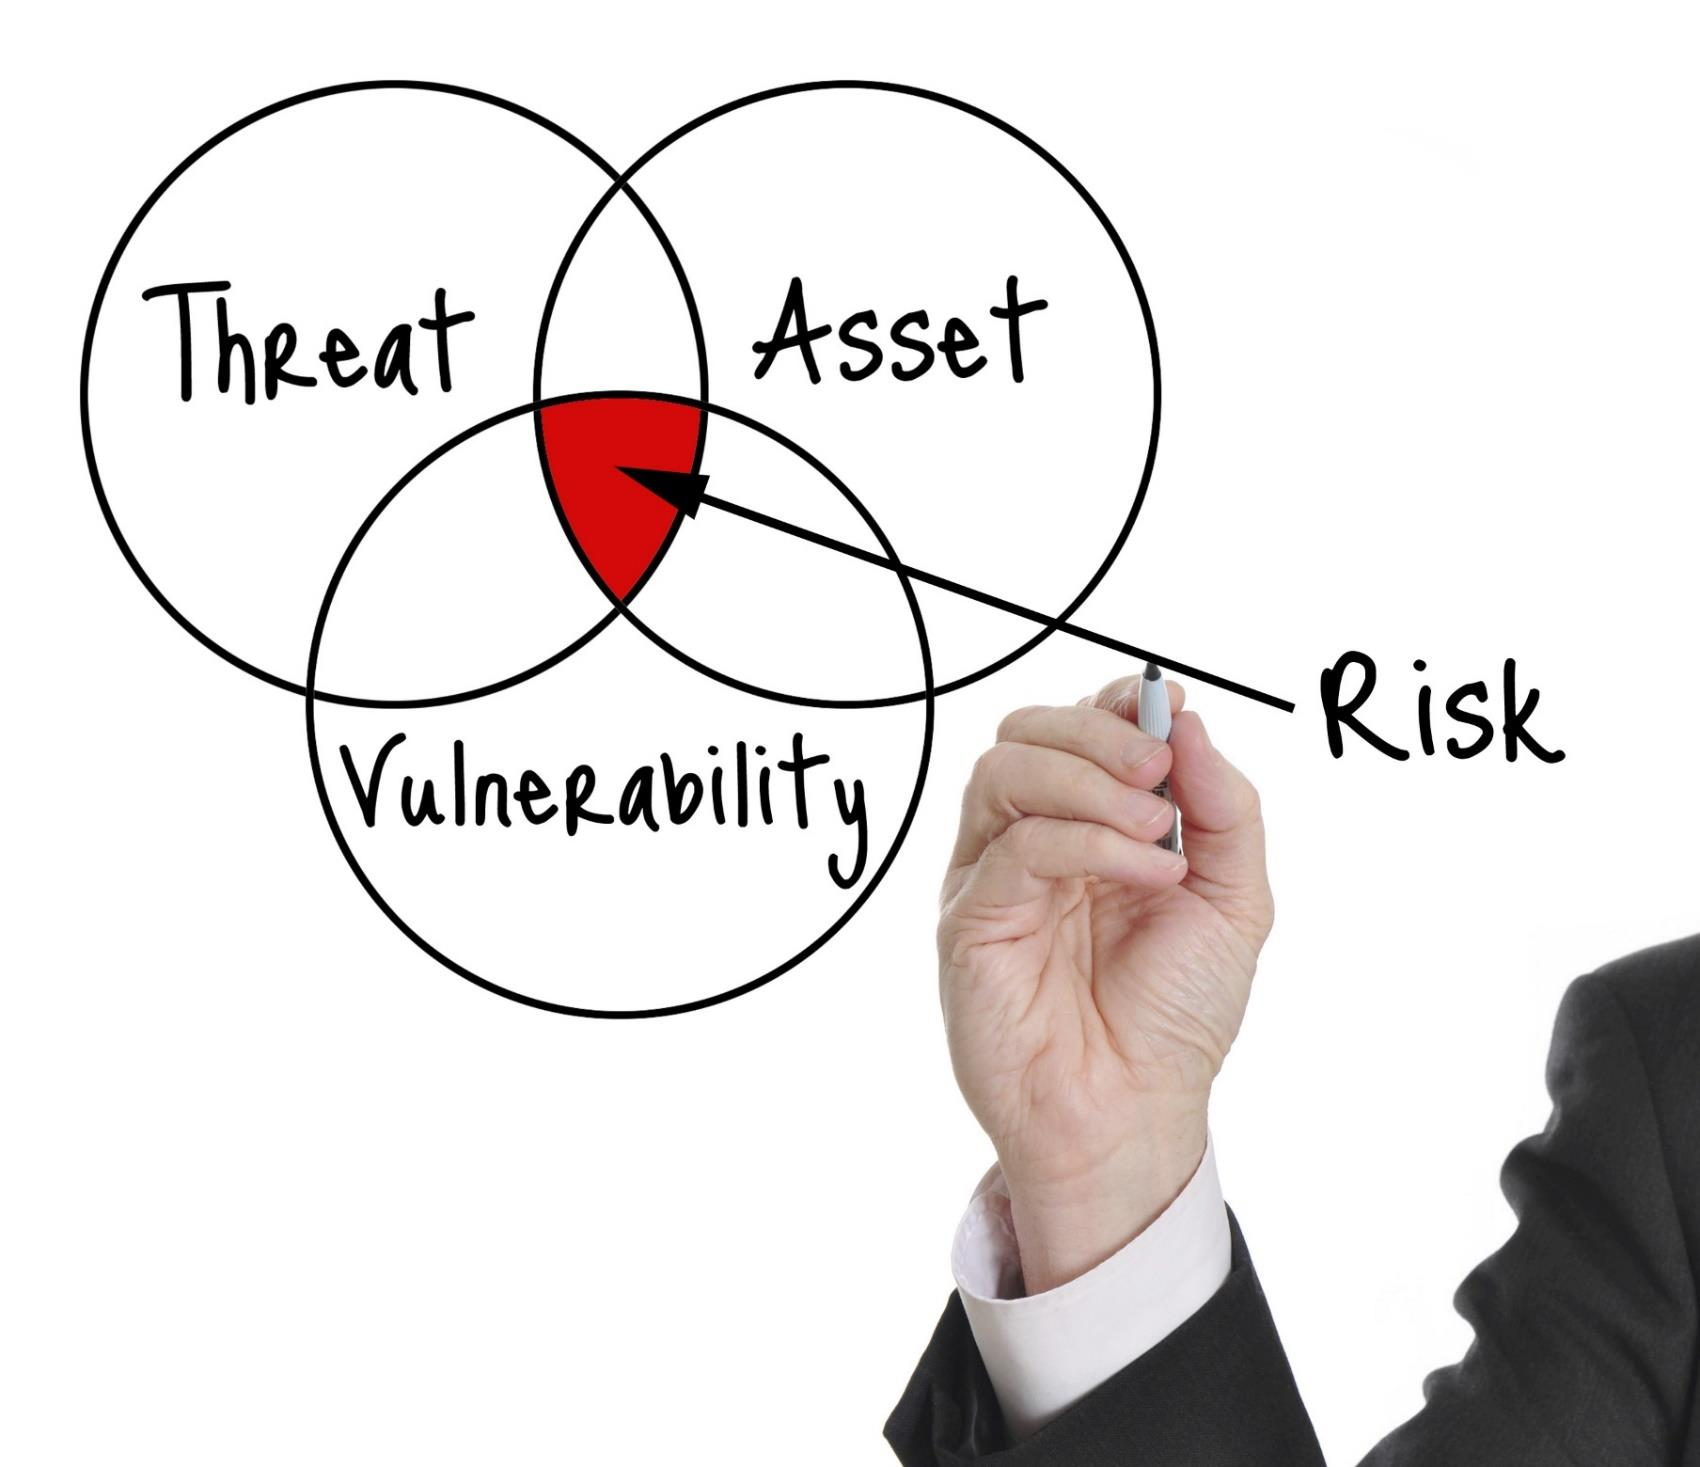 Risk treatment is the essential